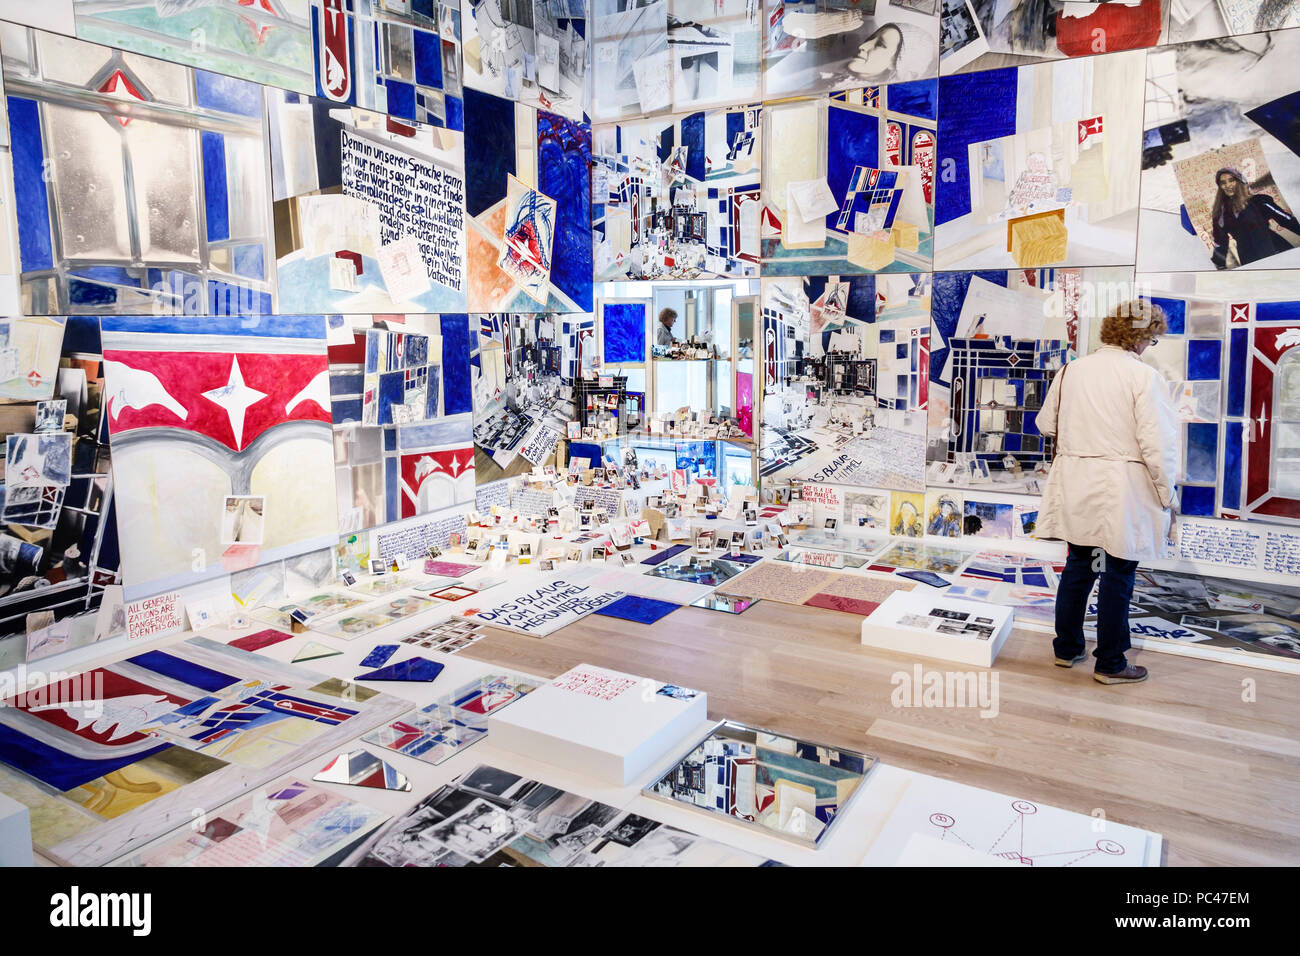 Miami Design District High Resolution Stock Photography And Images Alamy